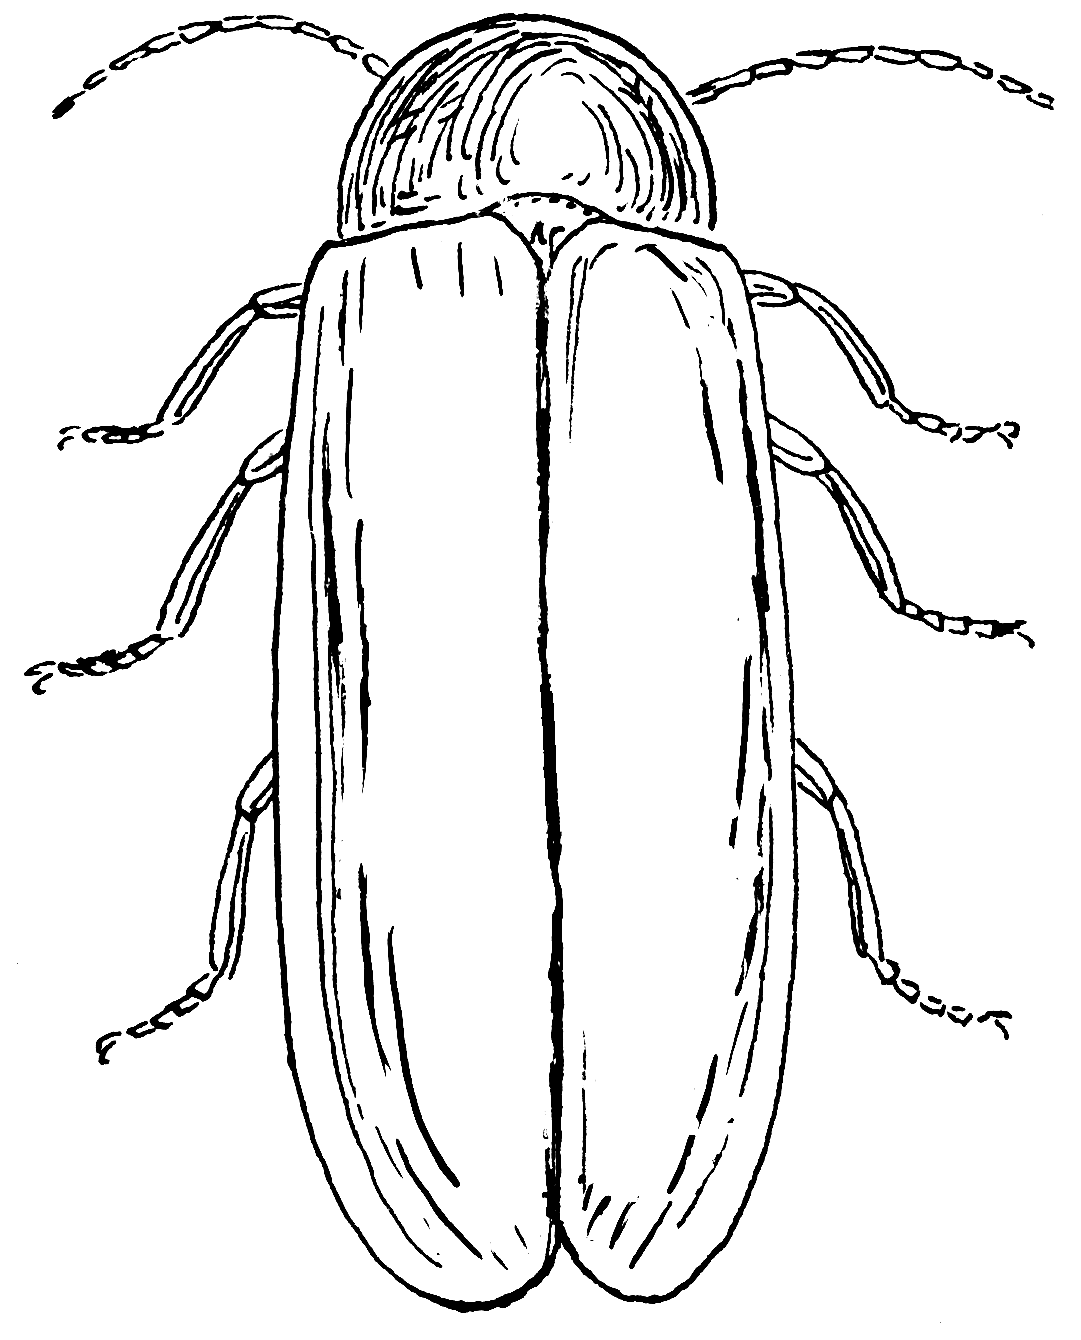 Firefly Insect Drawing at GetDrawings.com | Free for personal use ... for Firefly Drawing Scientific  303mzq